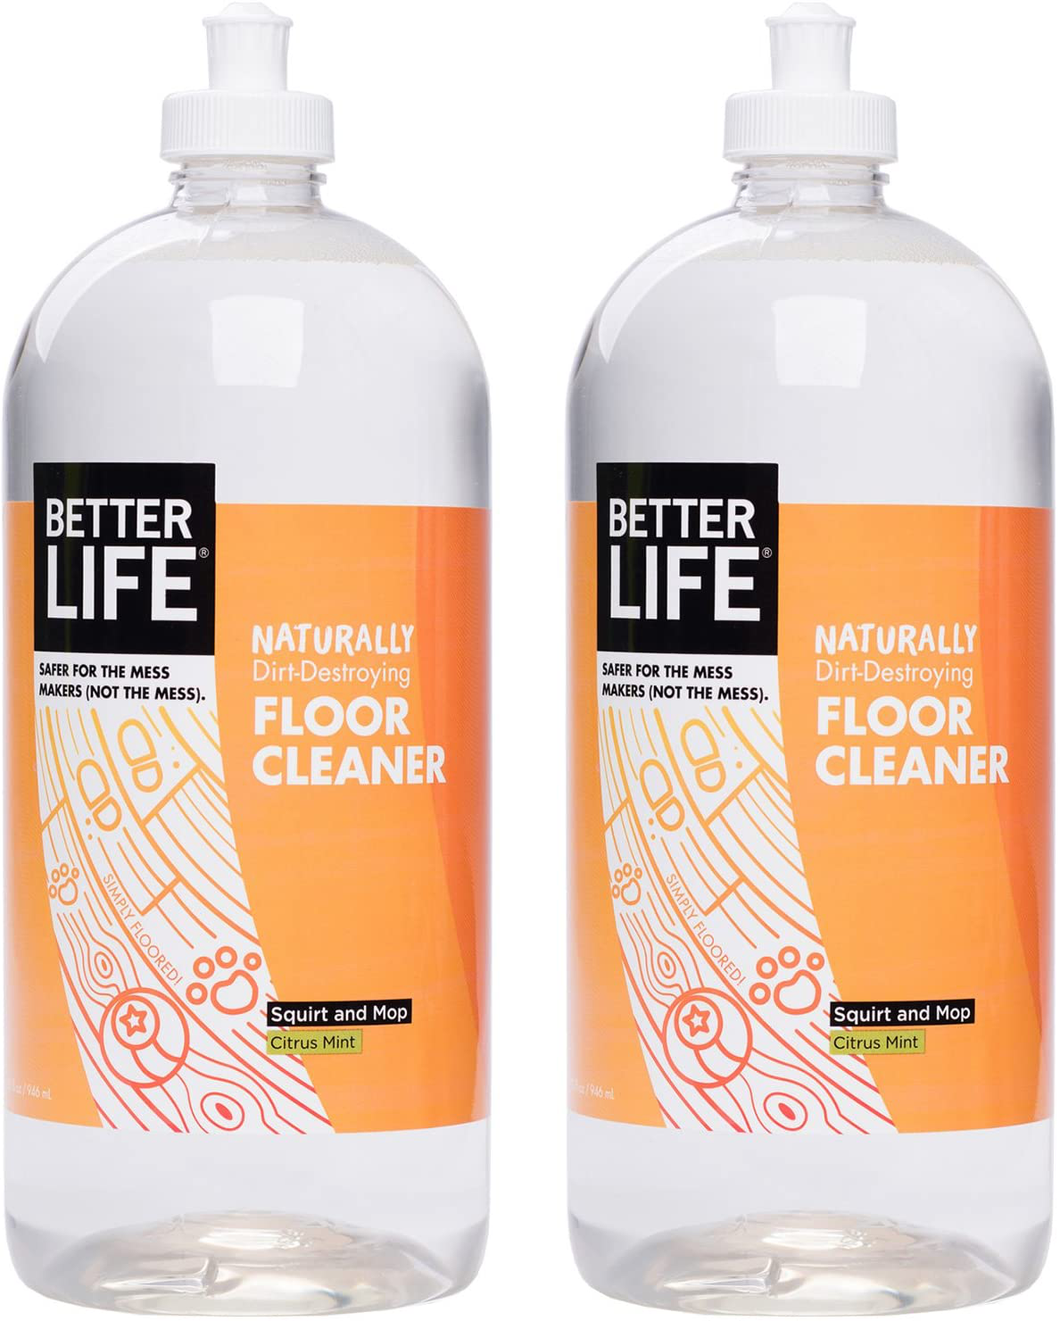 Better Life Naturally Dirt-Destroying Floor Cleaner, Citrus Mint, 32 Fl Oz (Pack of 2)